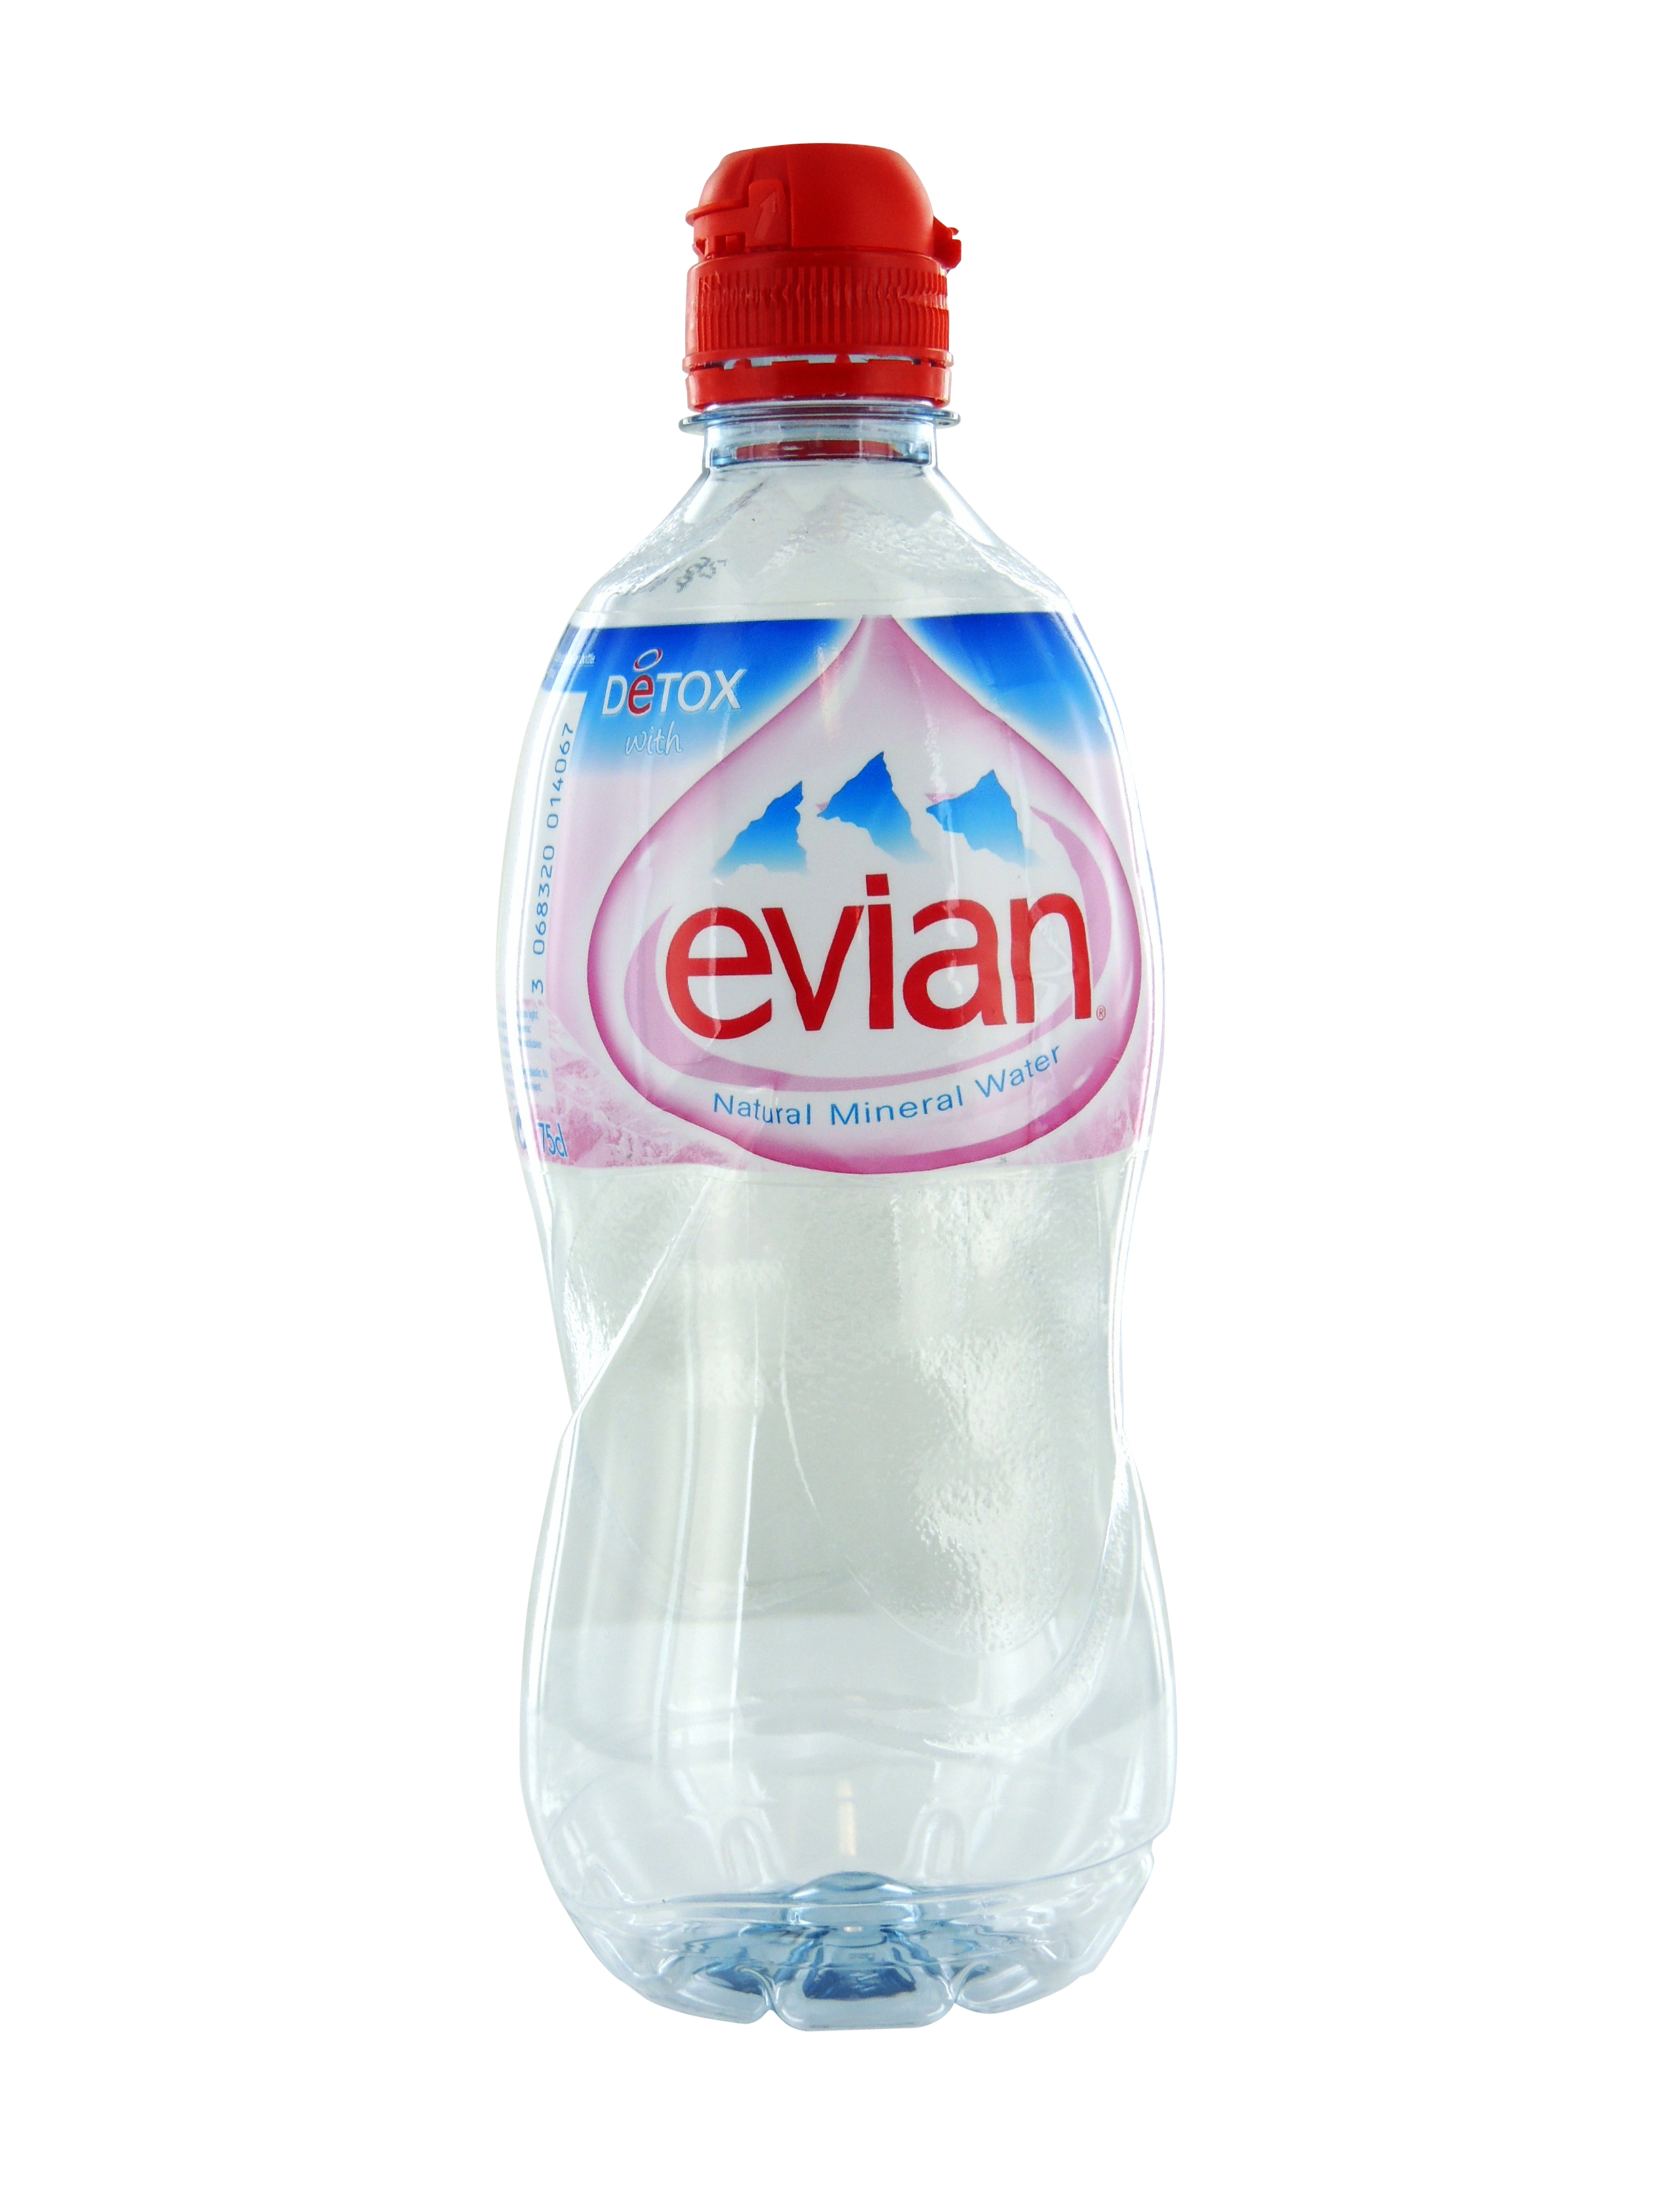 evian high elasticity sleeve label Celtheq